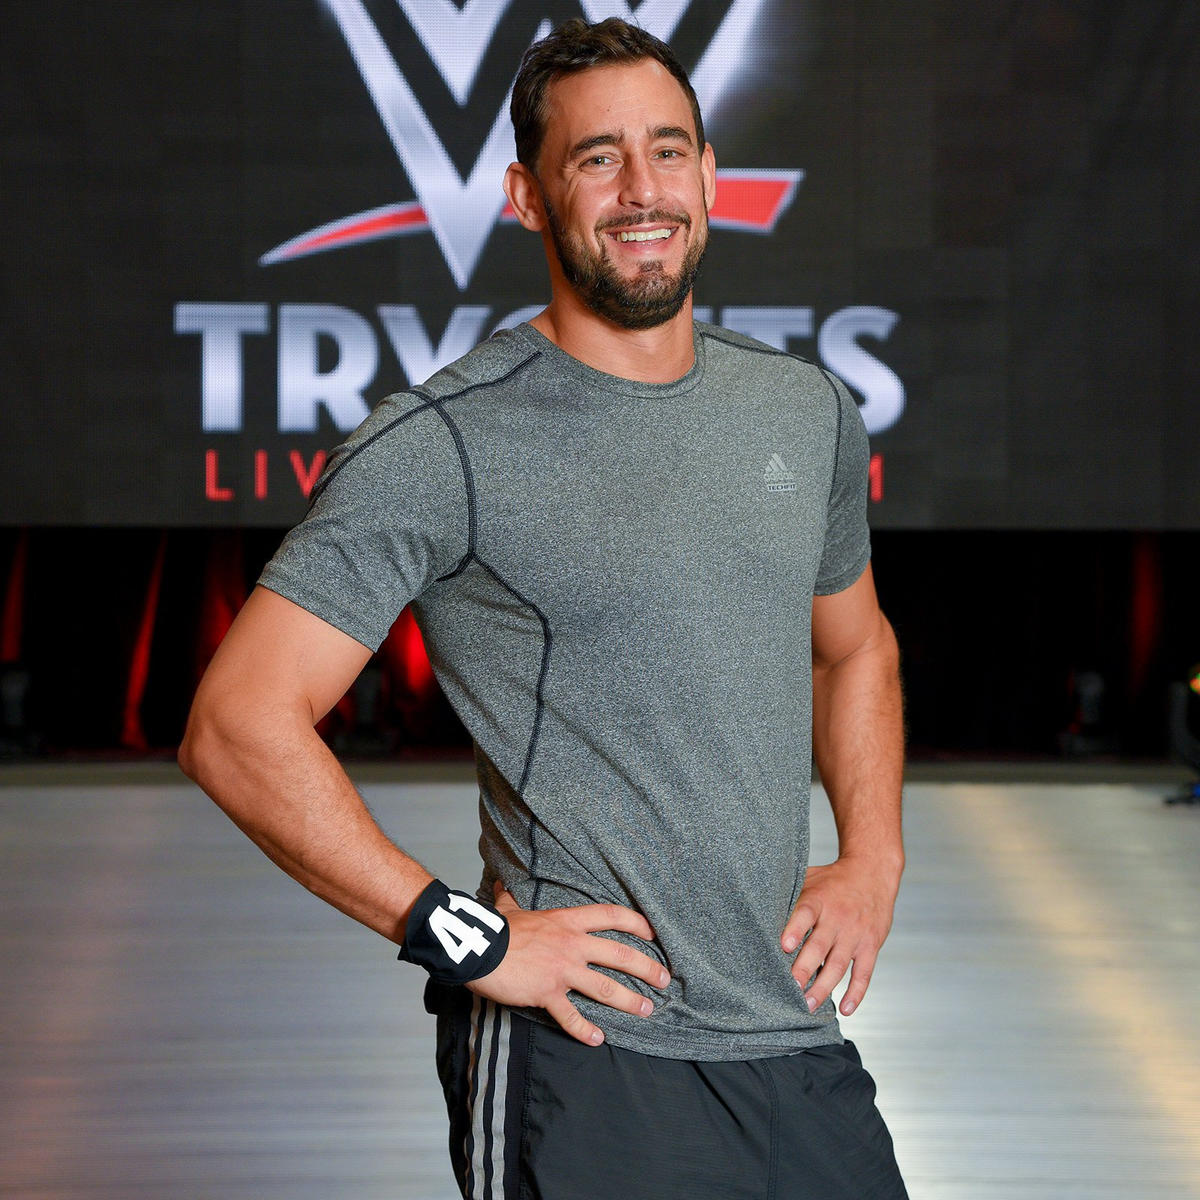 Ariel Levy made the journey from his home country of Chile to tryout at the WWE PC.